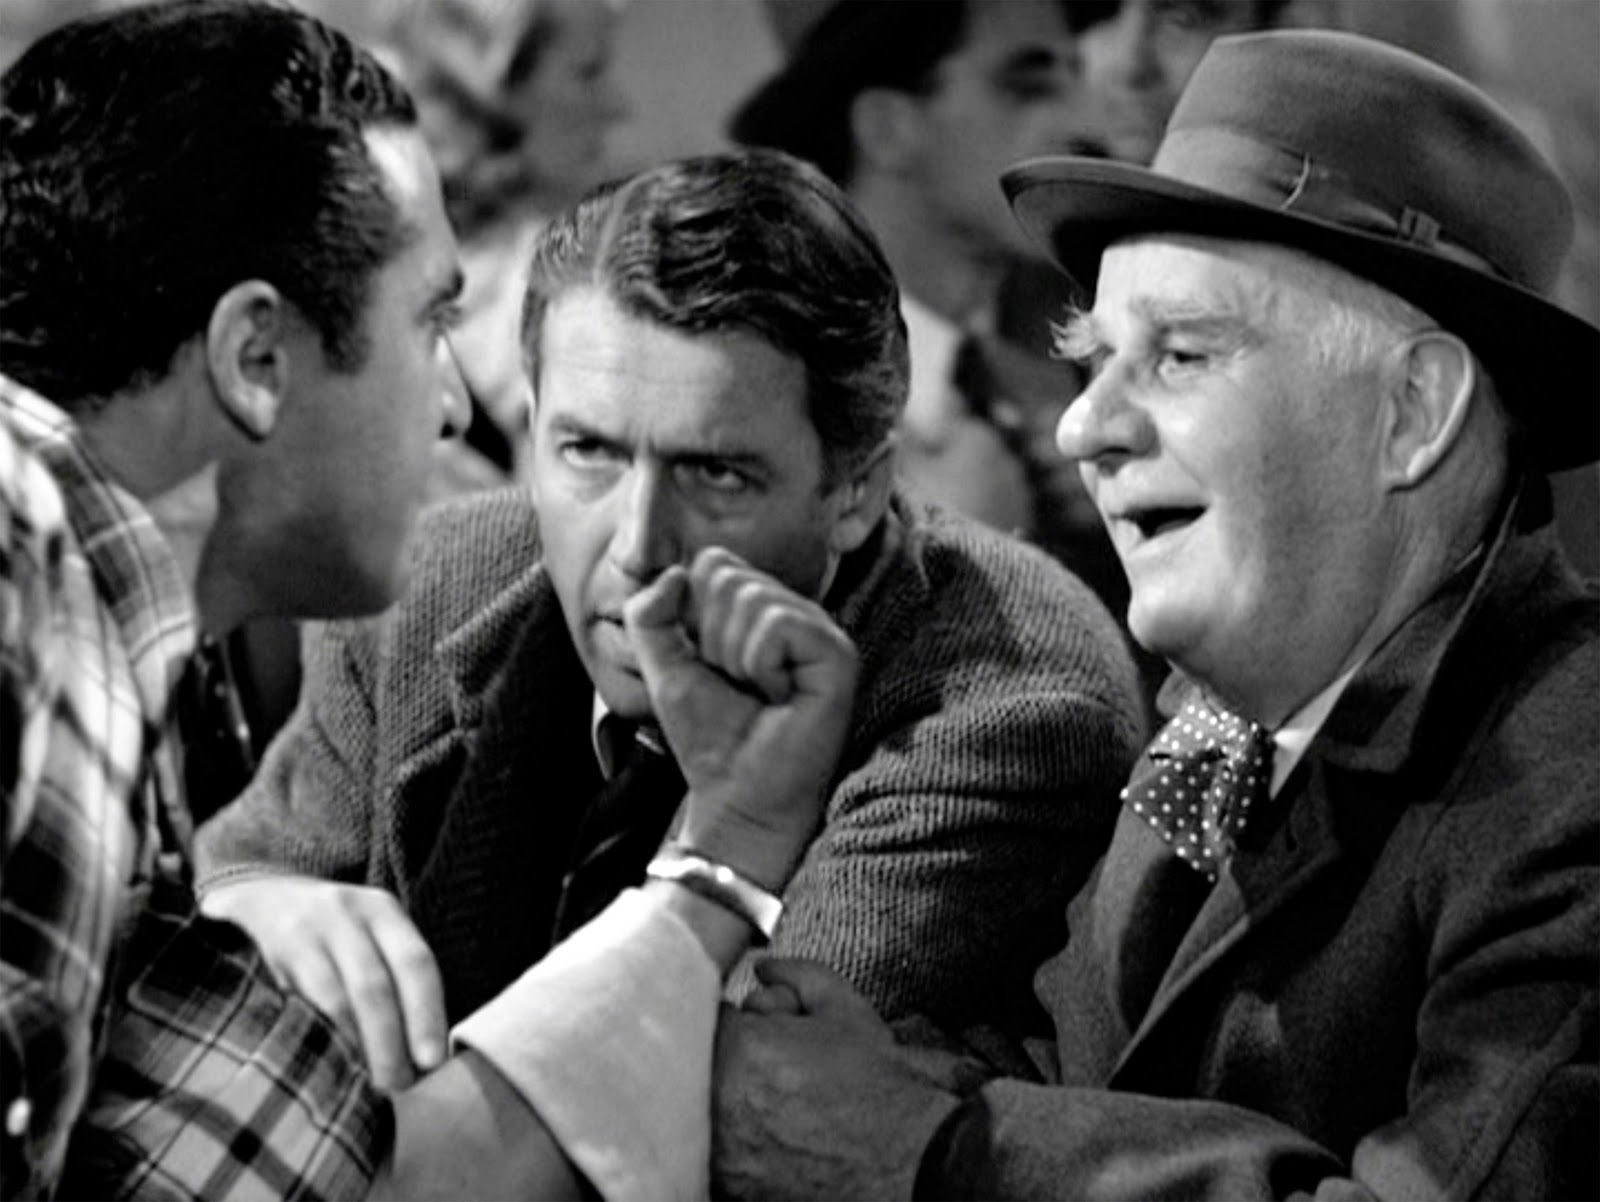 life is wonderful Classic festive films contain more than their fair share of murder, suicide and doomed relationships, says comedy writer jack bernhardt.